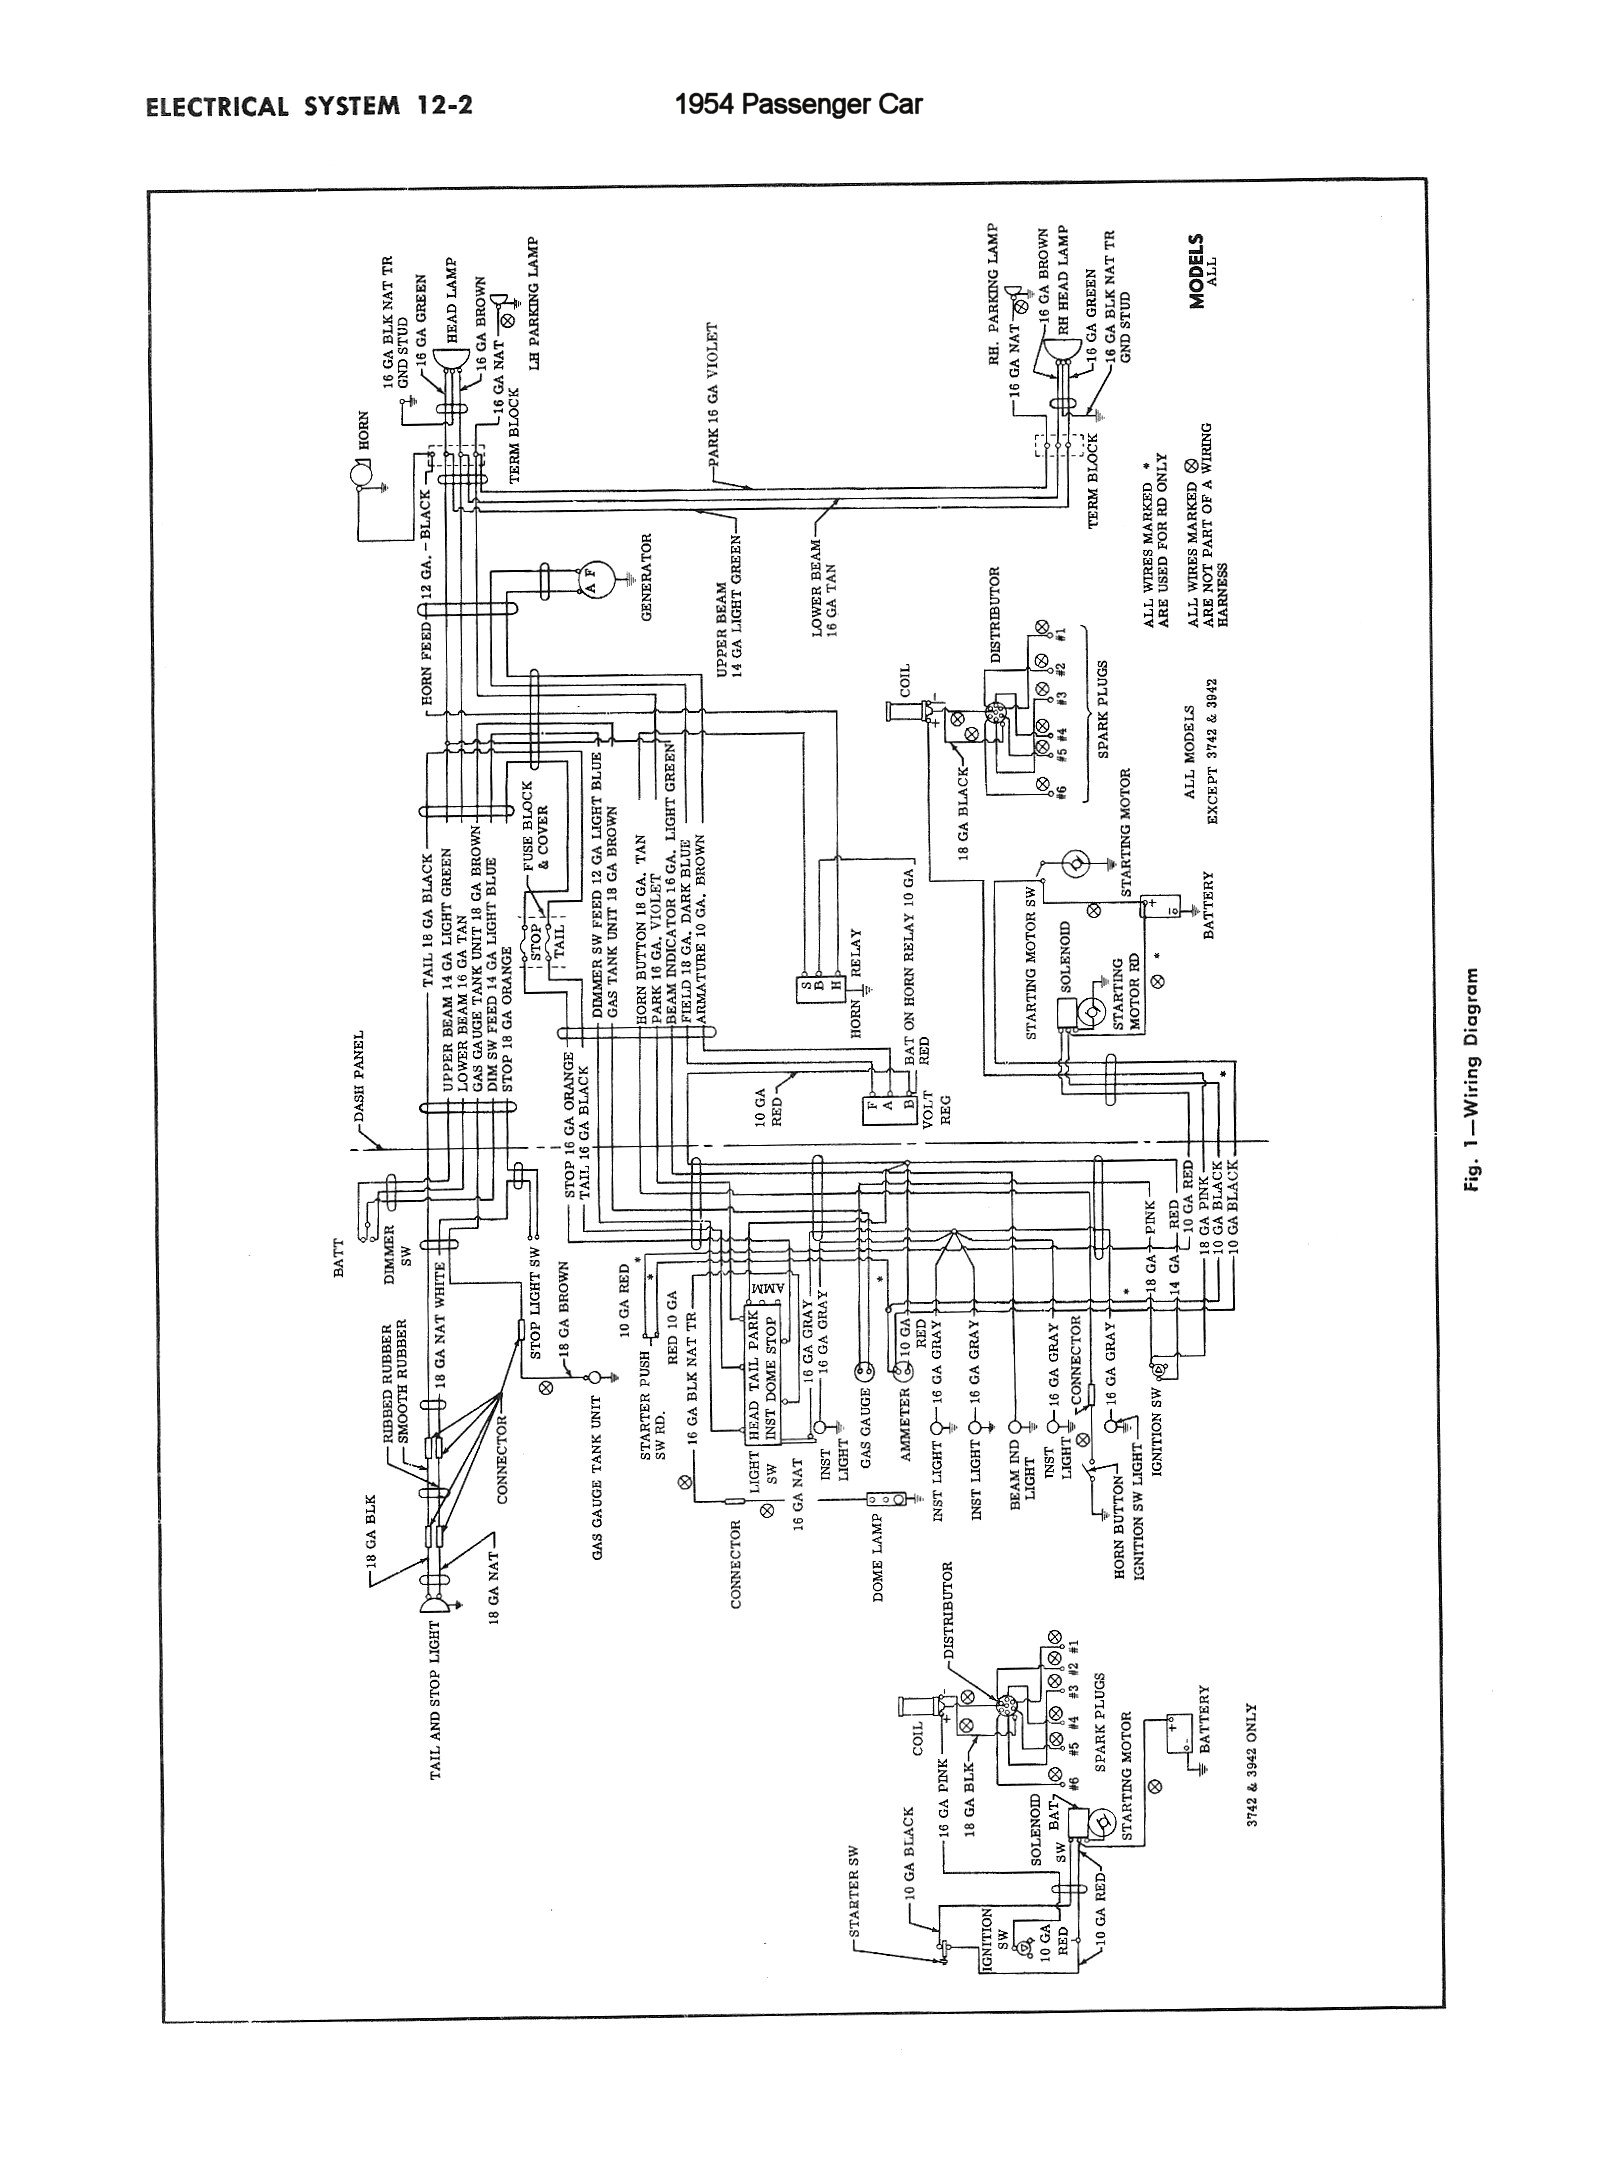 Honda Ridgeline Air Conditioner Wiring Diagram